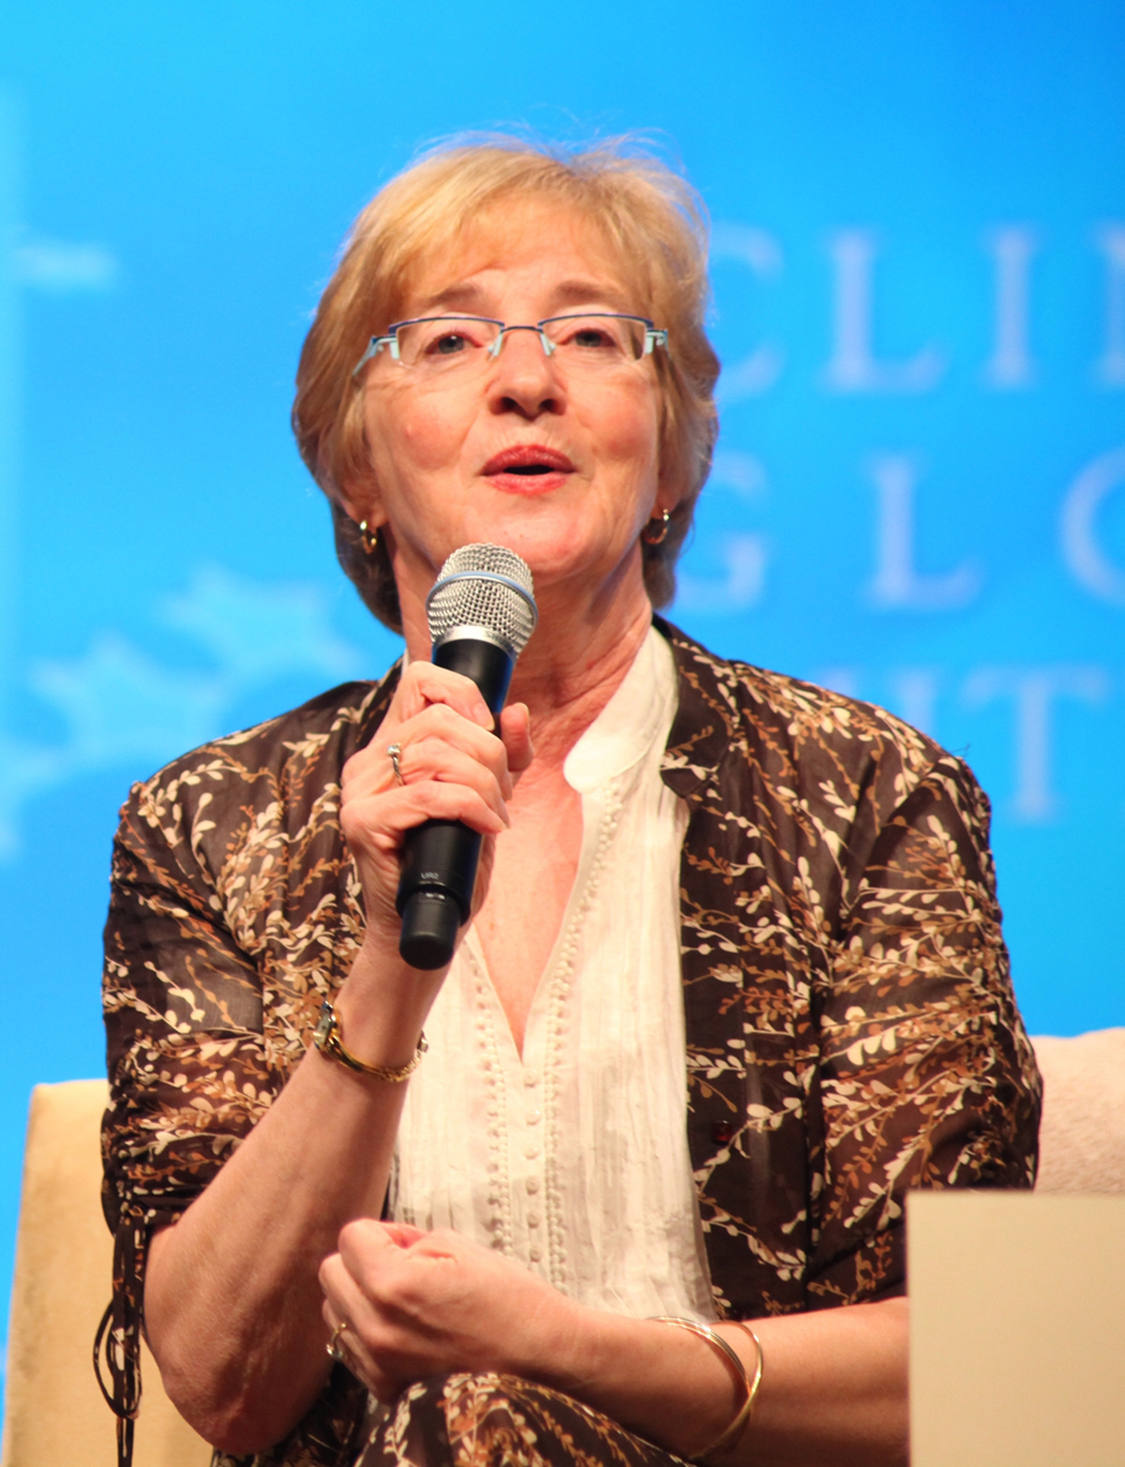 Author and advocate Maude Barlow will kick off the conference in a keynote address on Feb. 23 at 7:00 p.m. in the Dumke Auditorium of the Utah Museum of Fine Arts. A former advisor to the president of the UN General Assembly, Barlow is currently national chairperson of the Council of Canadians, and chairs the board of Food and Water Watch based in Washington.